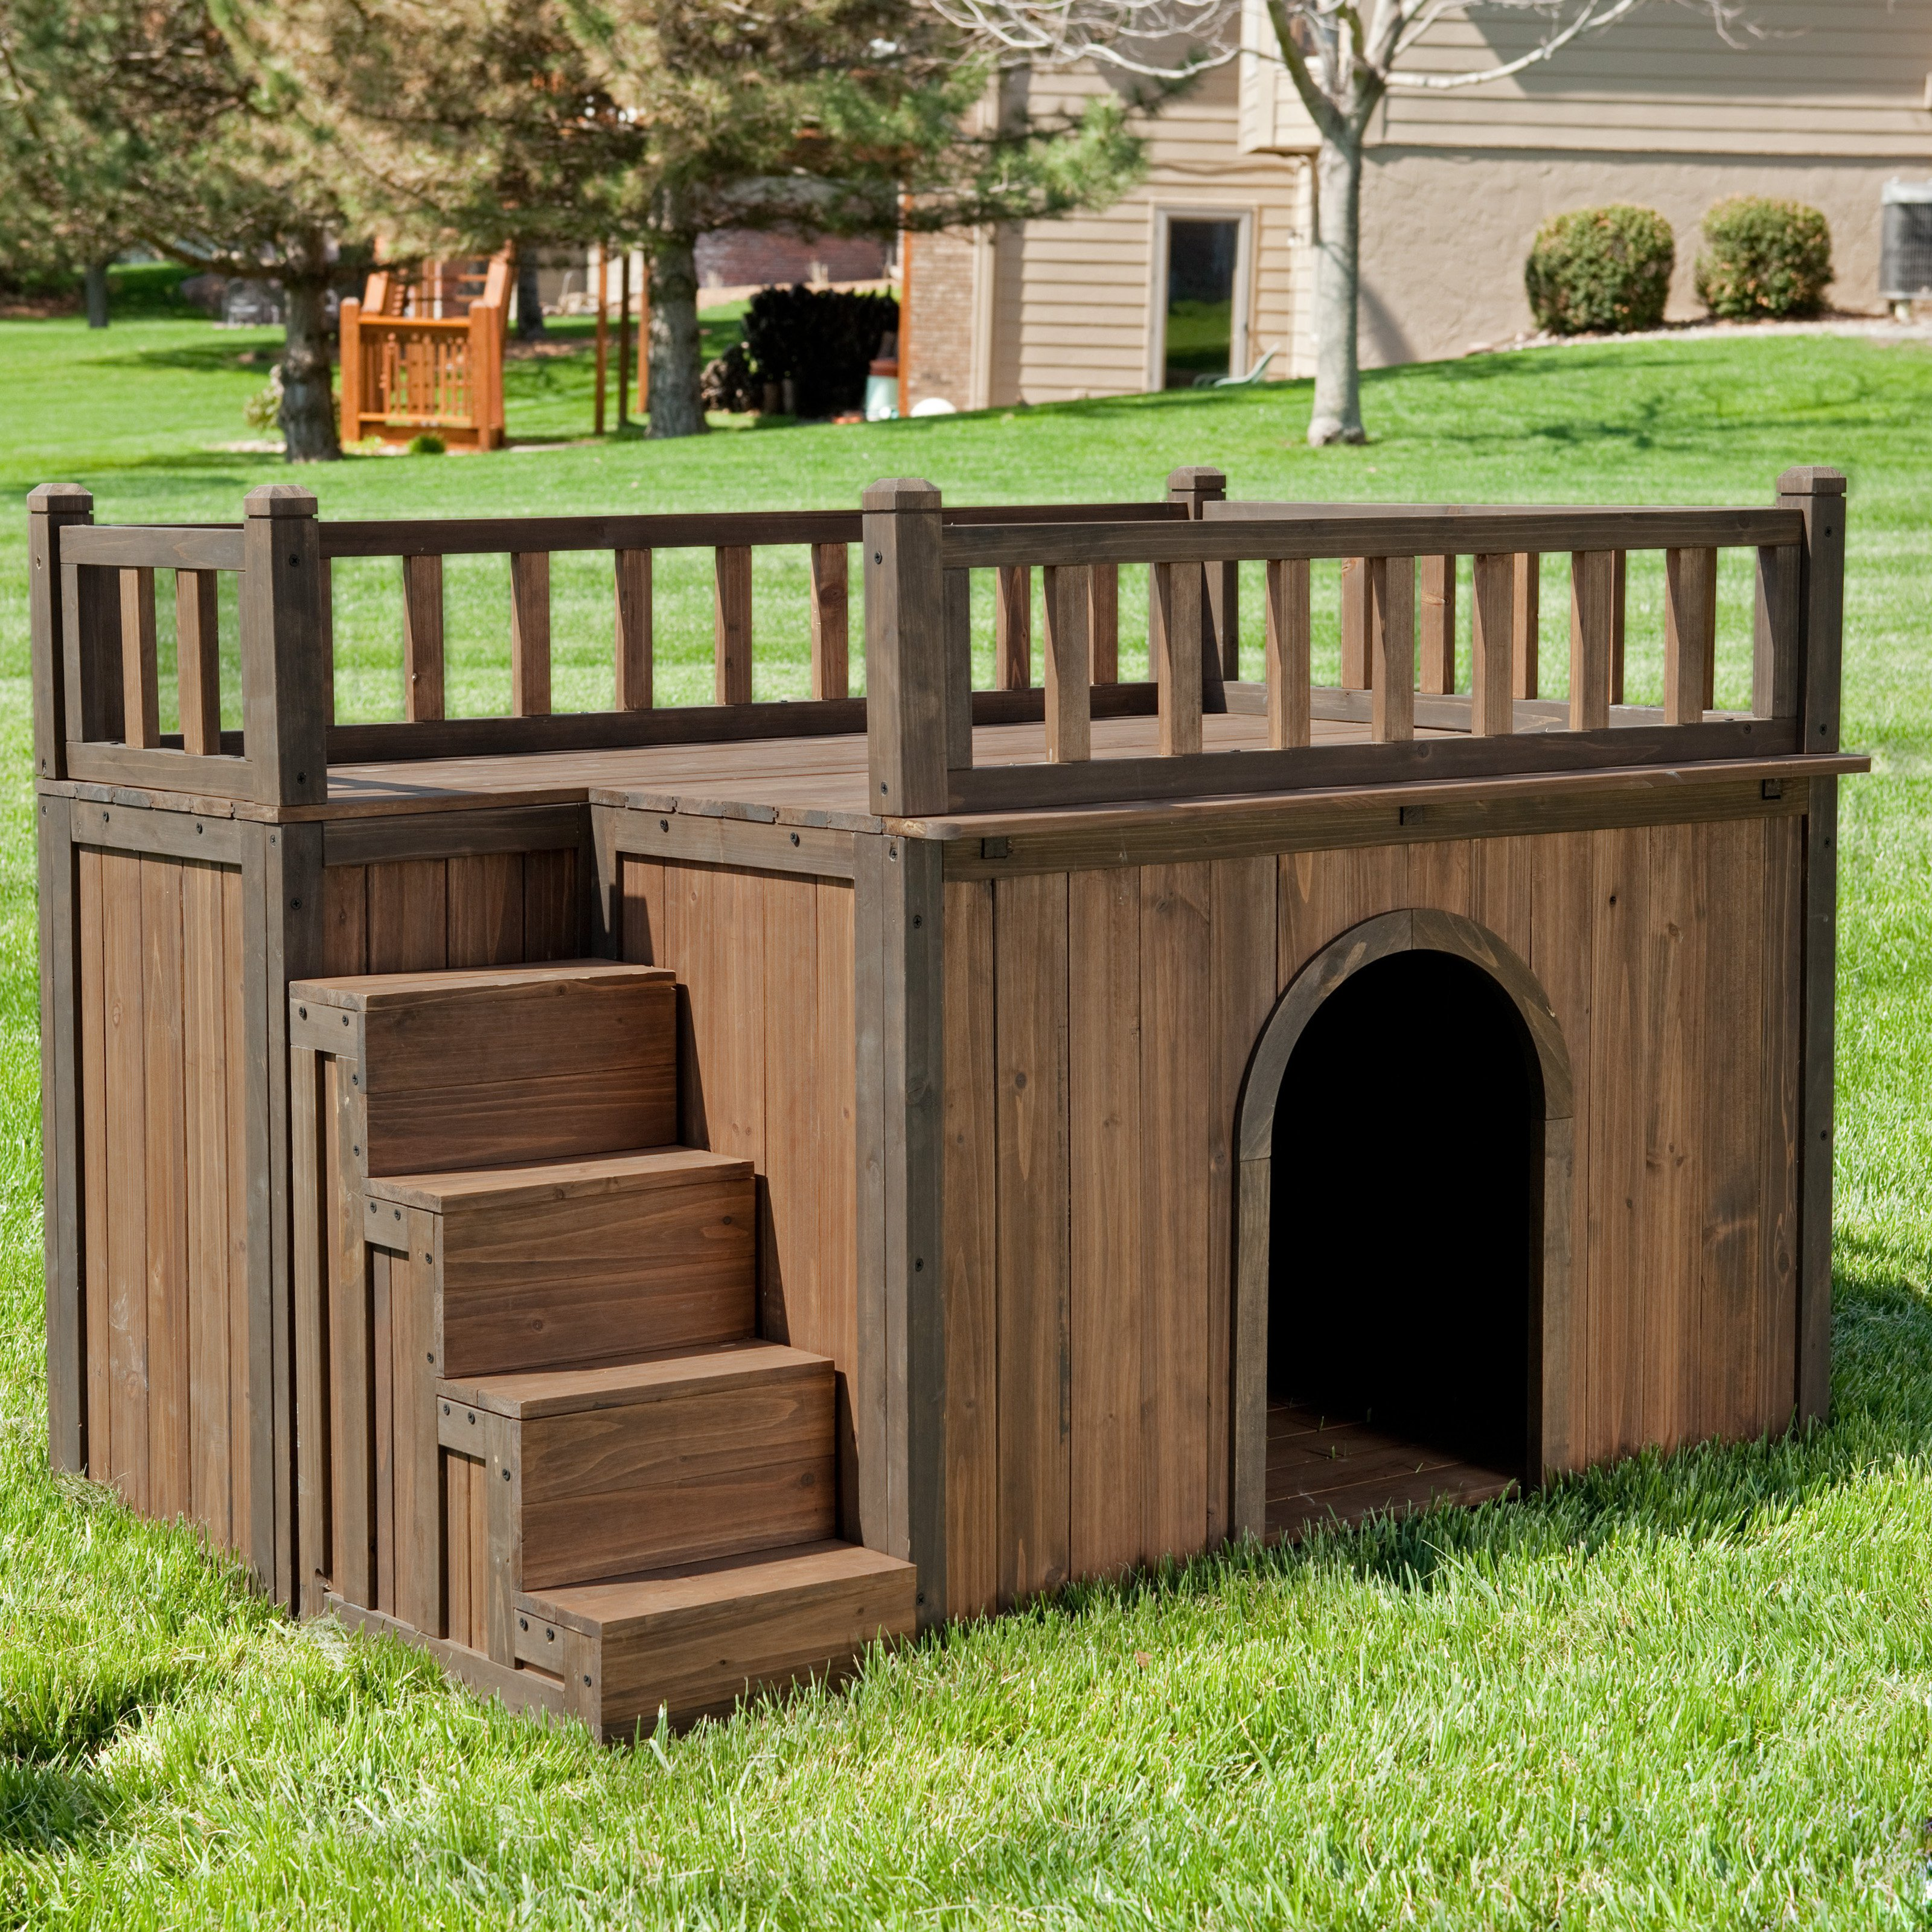 Boomer & George Stair Case Dog House